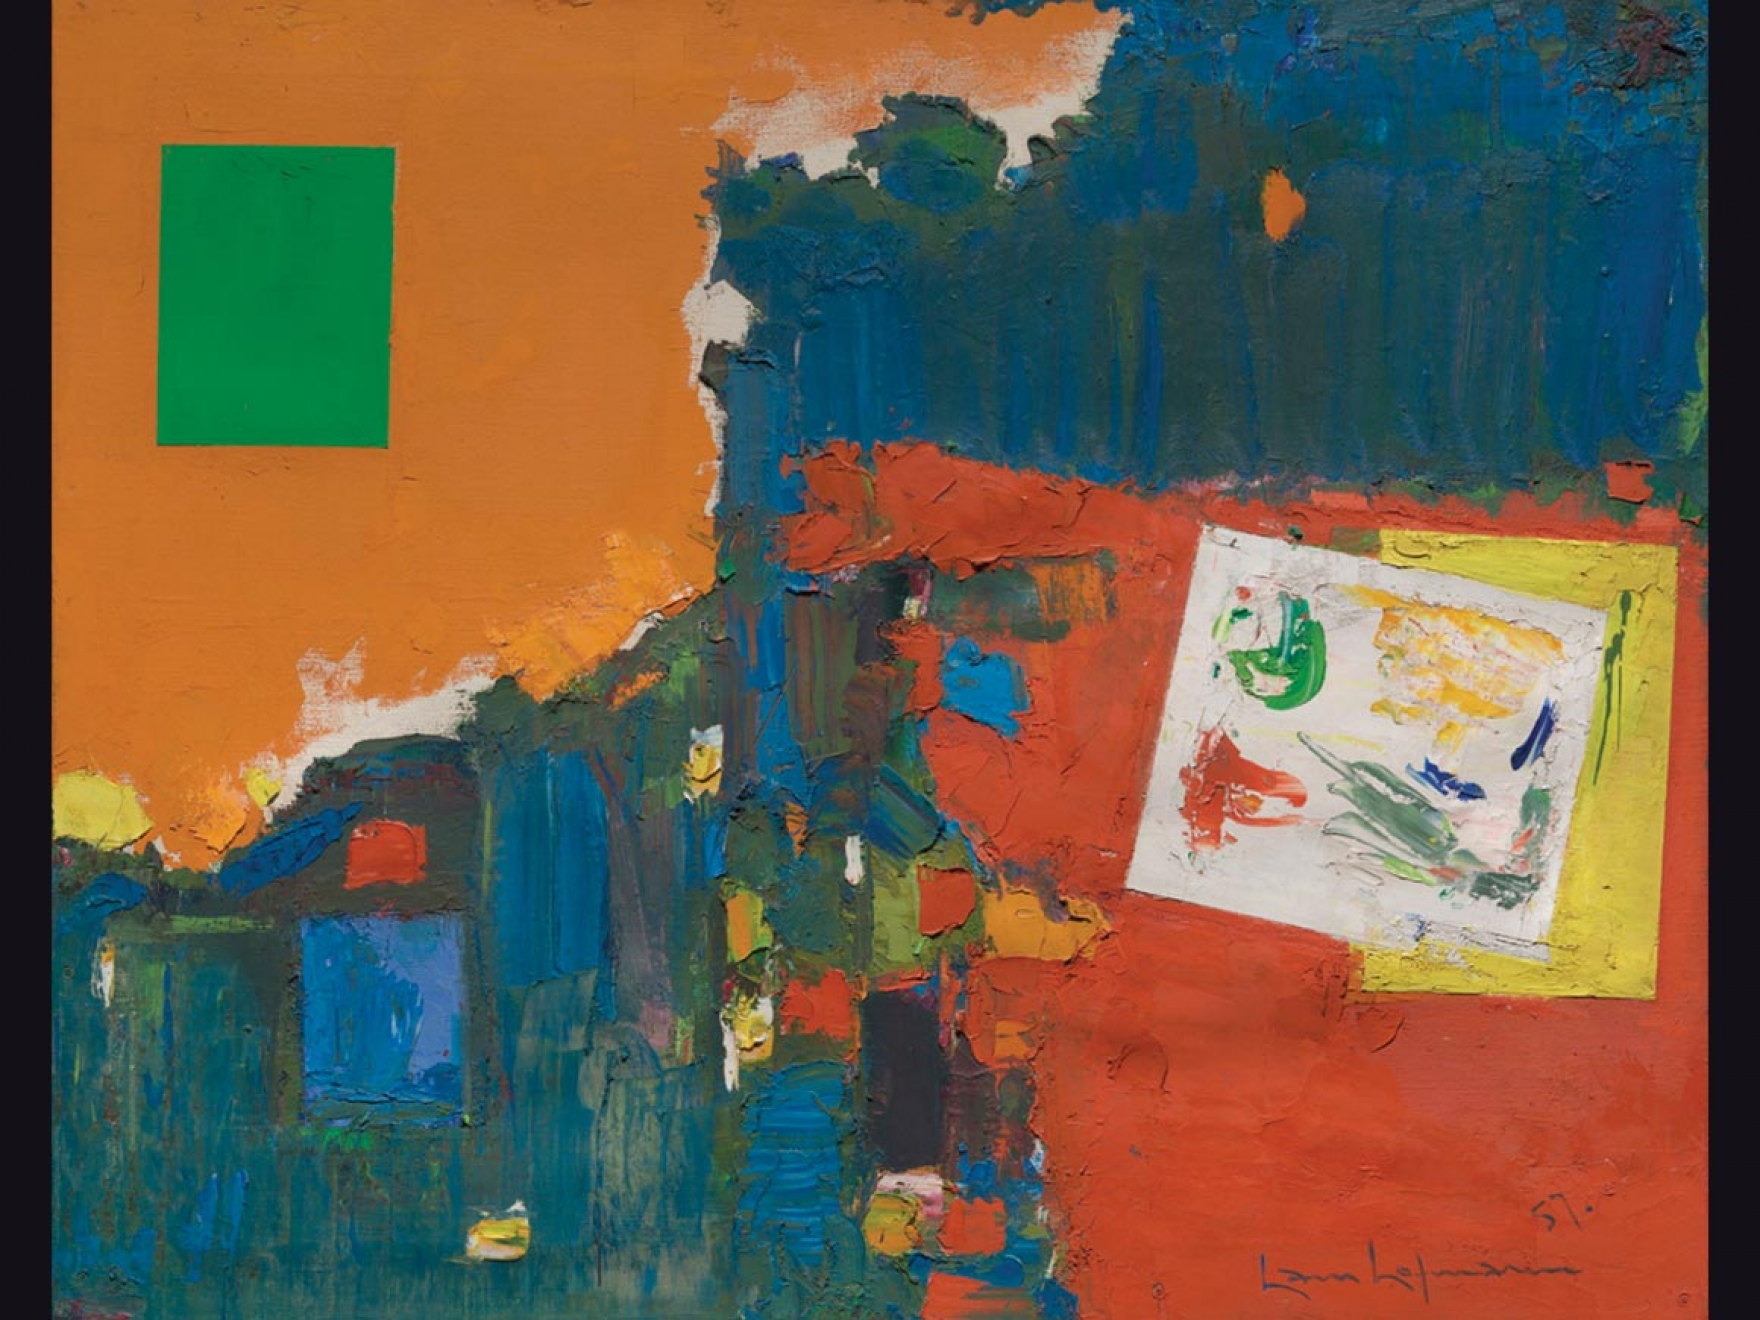 Colorful abstract expressionist painting